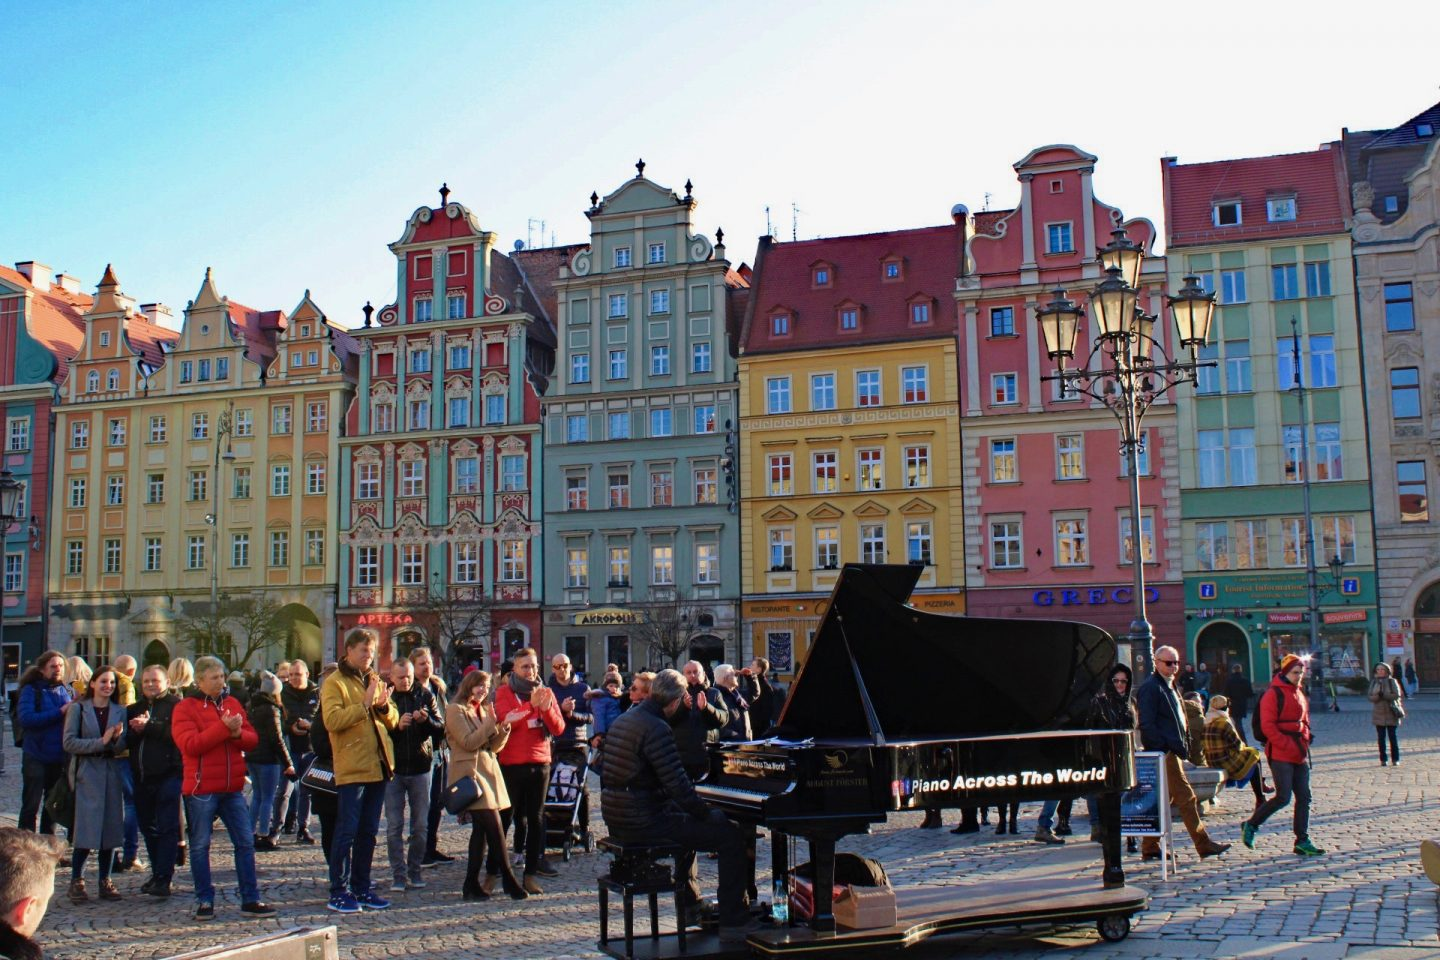 things to do in Wrocław: a man playing the piano in the colourful market square, with a crowd listening and clapping around him